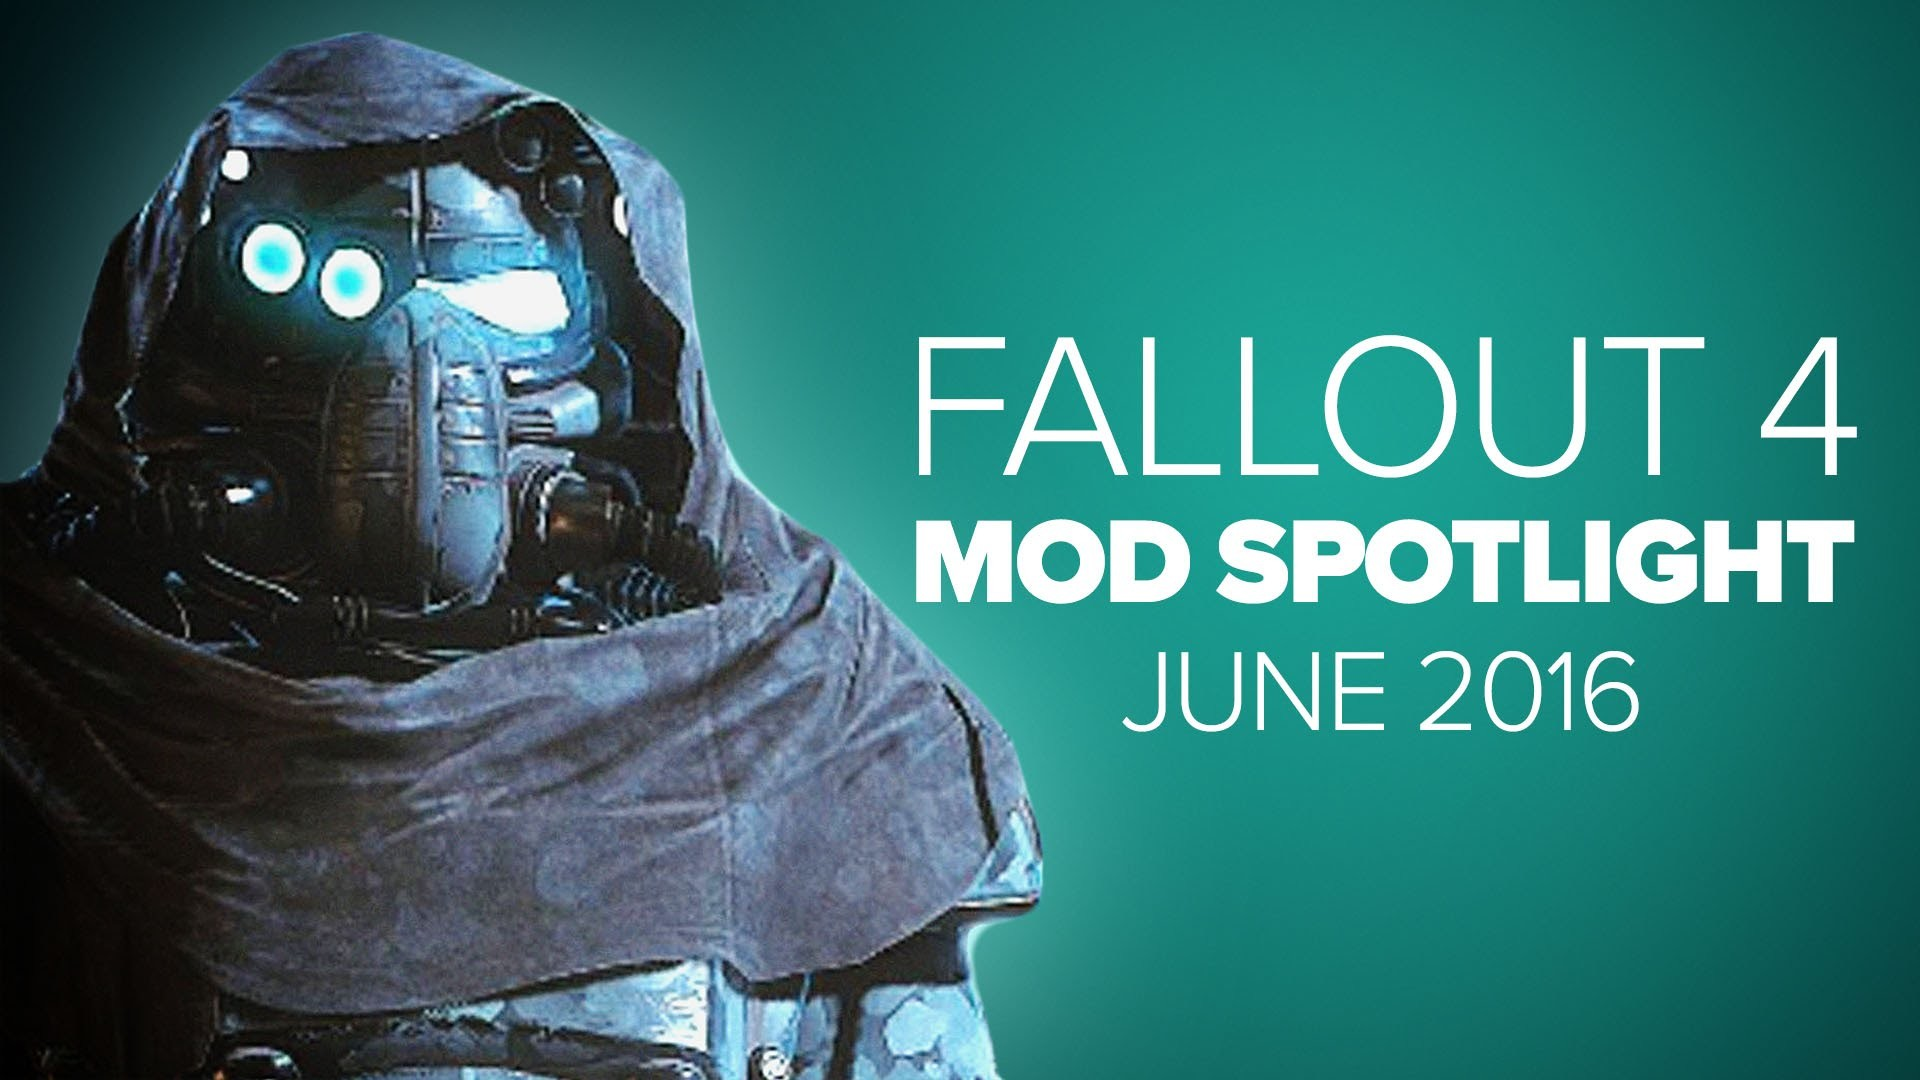 1920x1080 Fallout 4 Mod Spotlight - T-49 Power Armor, Vault Girl, Console Mods & More  [June 2016] - YouTube